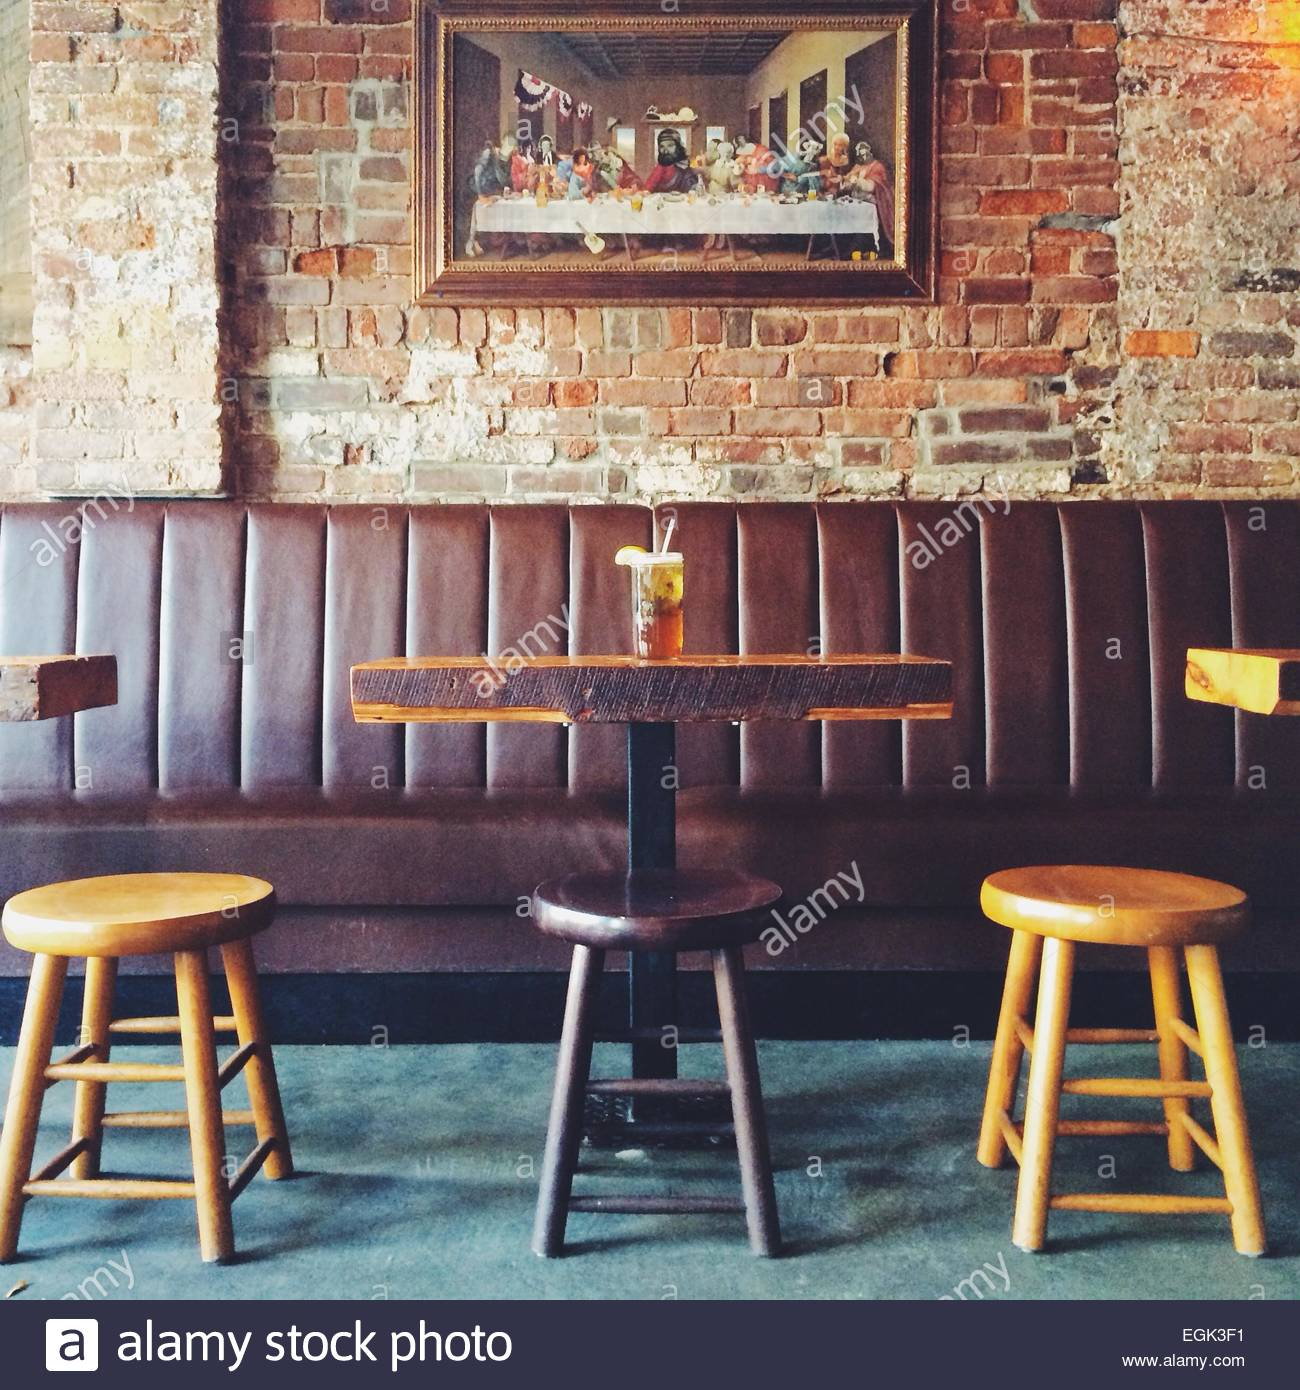 Pub table and stools with The Last Supper in background Stock Photo